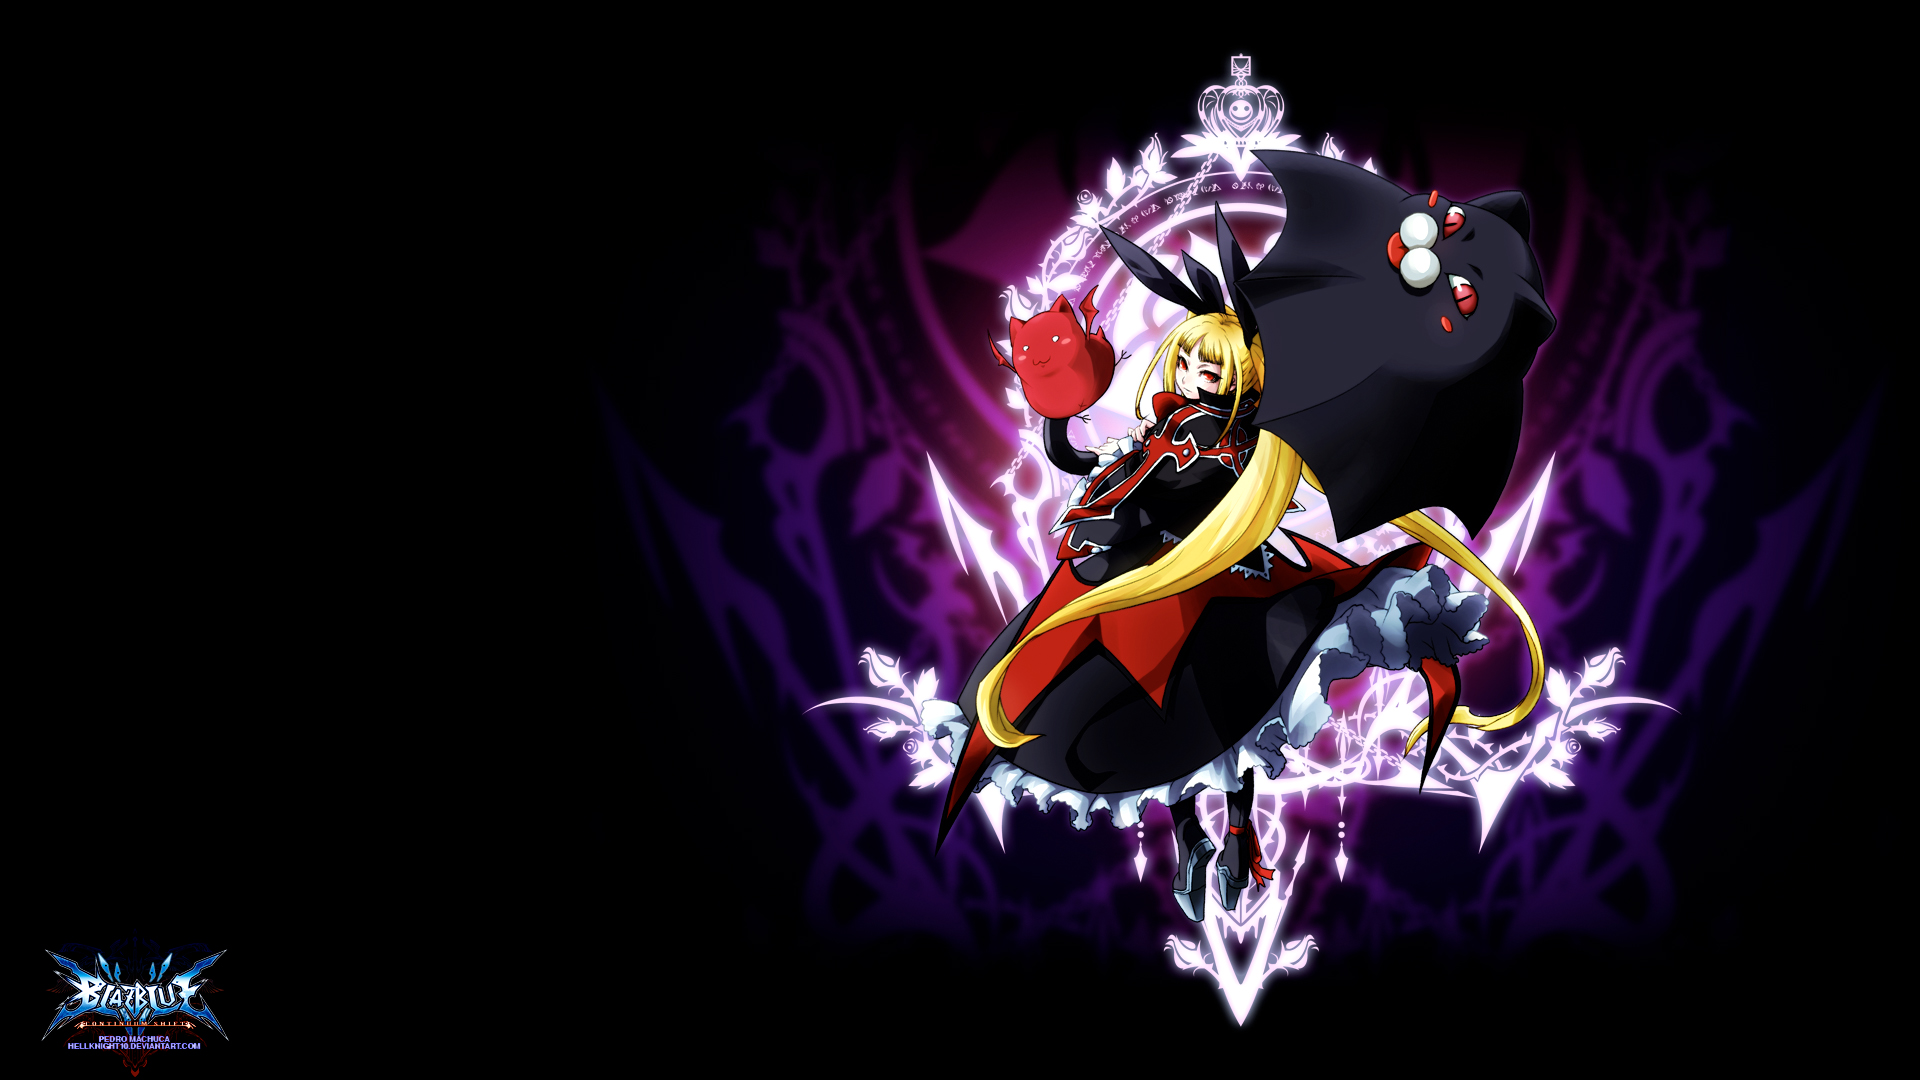 77 Blazblue Wallpaper On Wallpapersafari